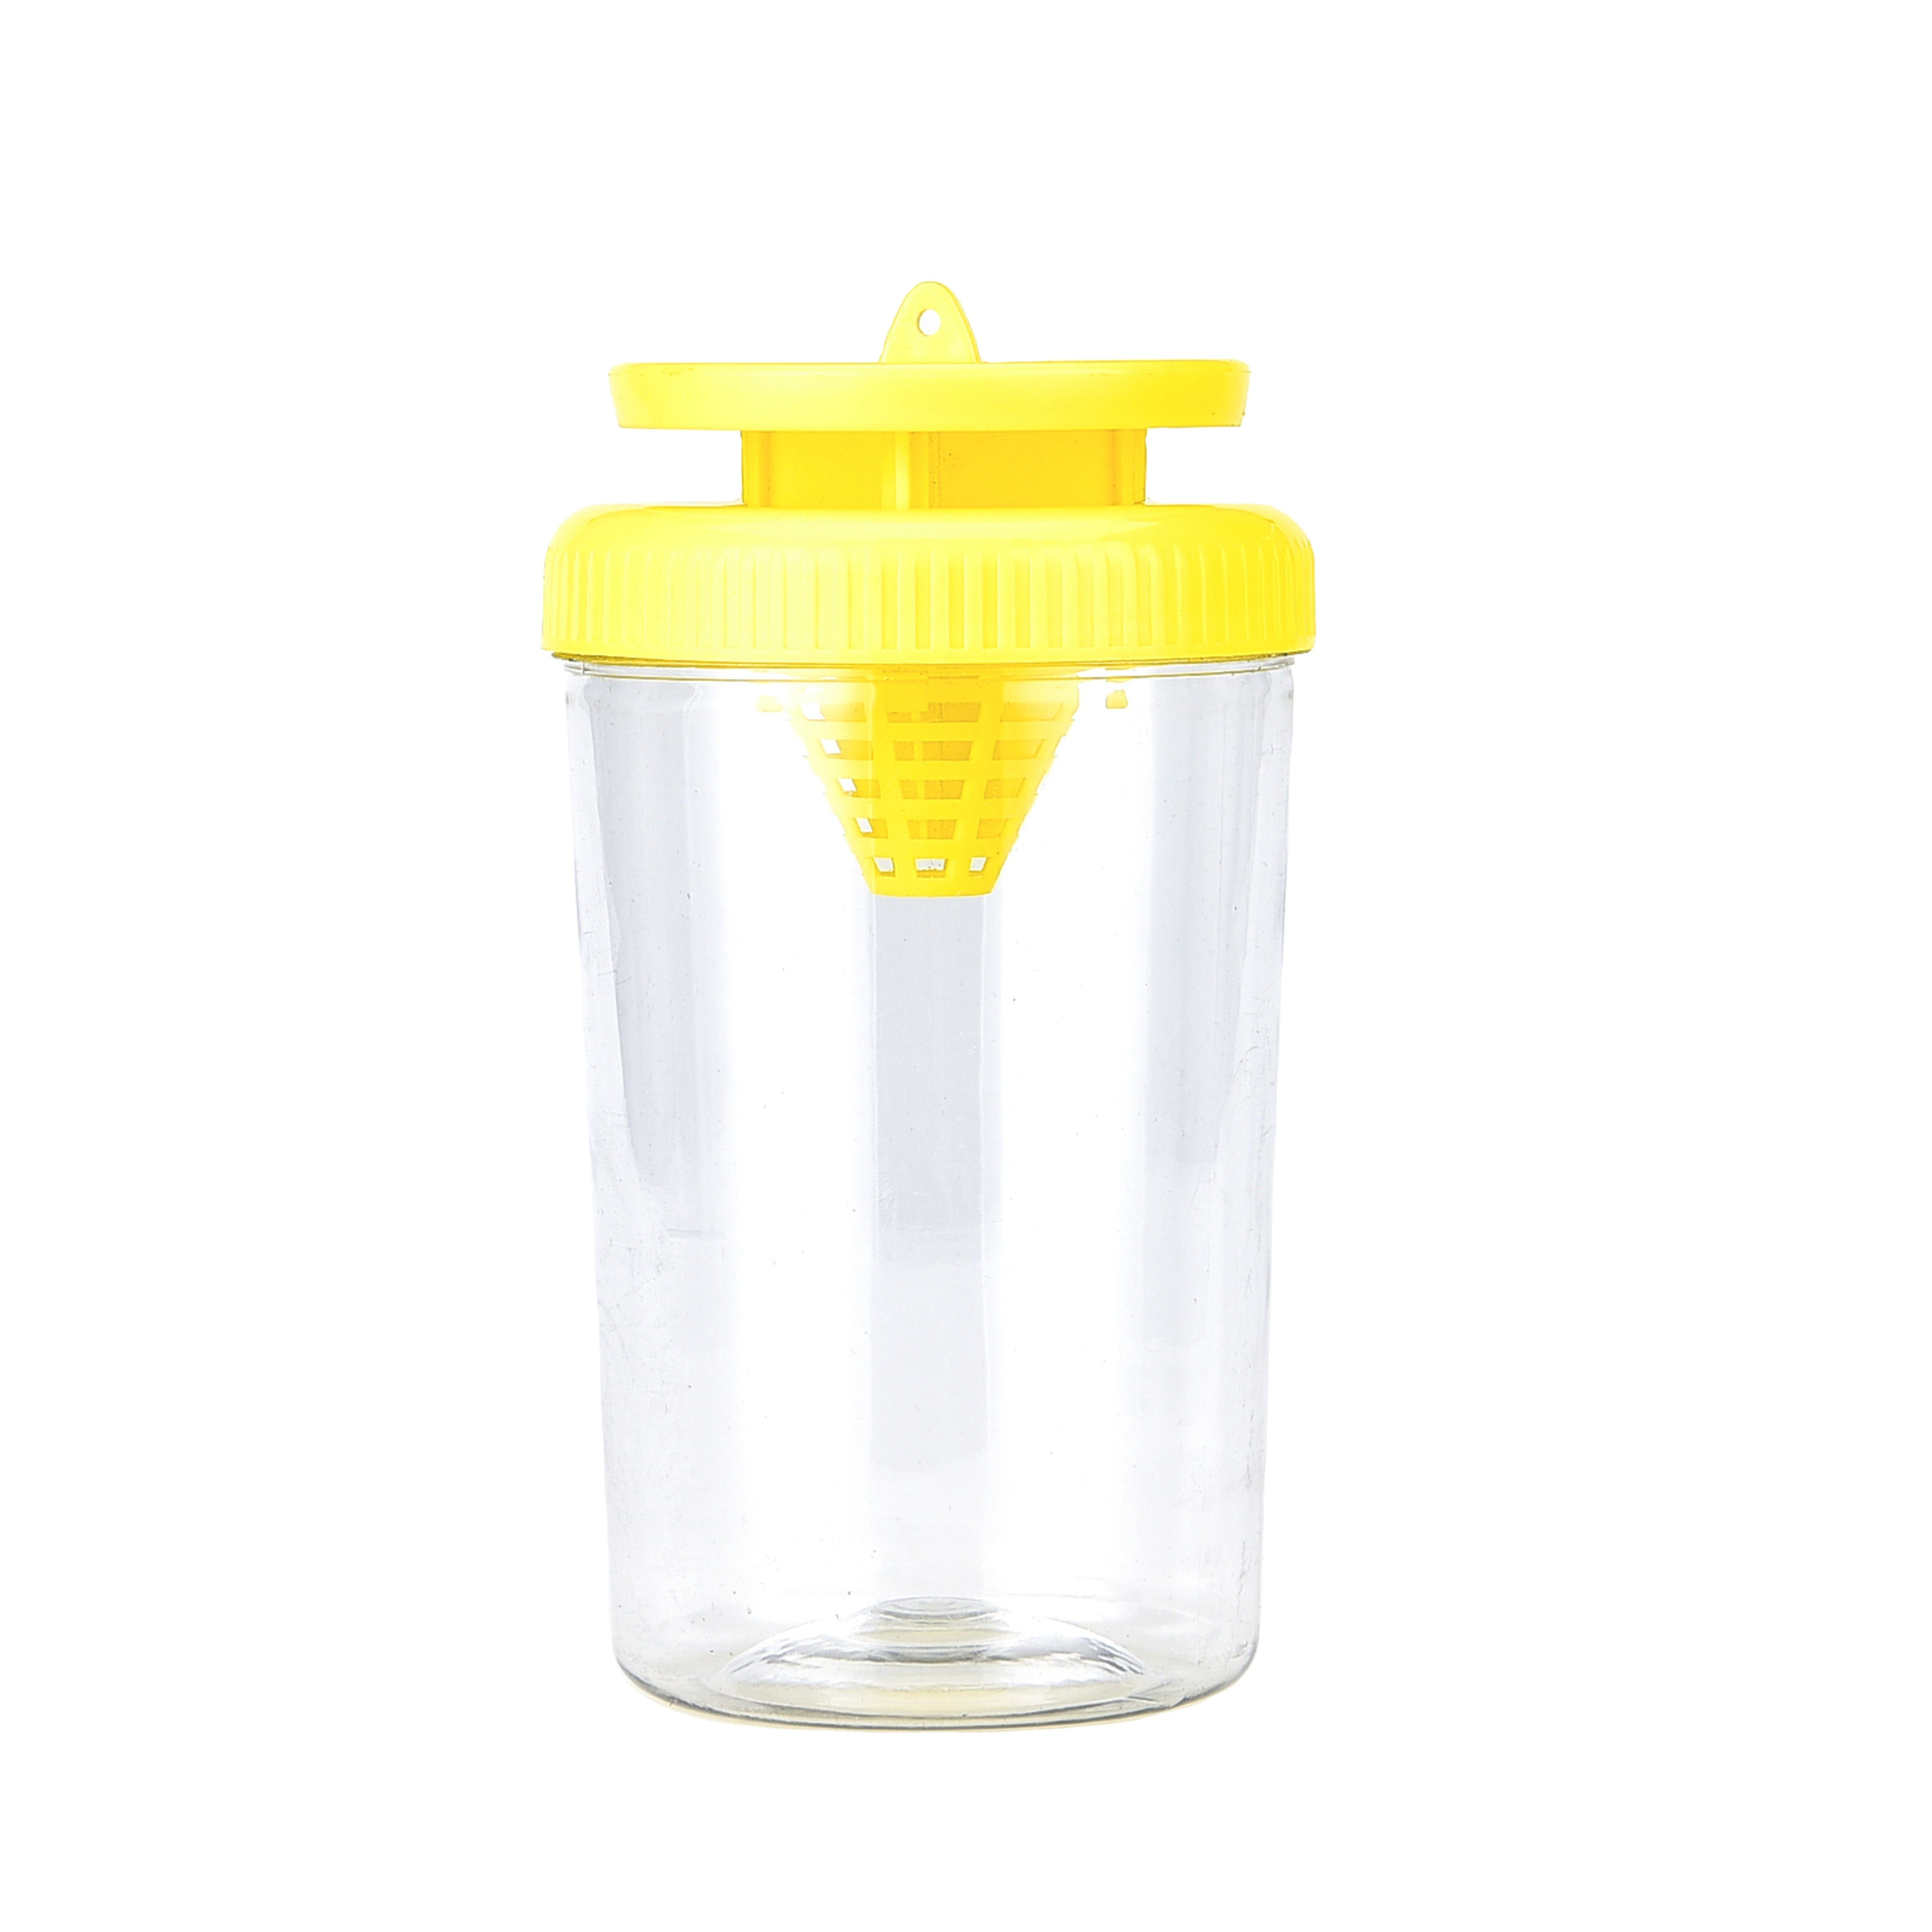 Plastic hanging automatic bottle fruit fly trap glue trap fan indoor catcher insect flies with bait